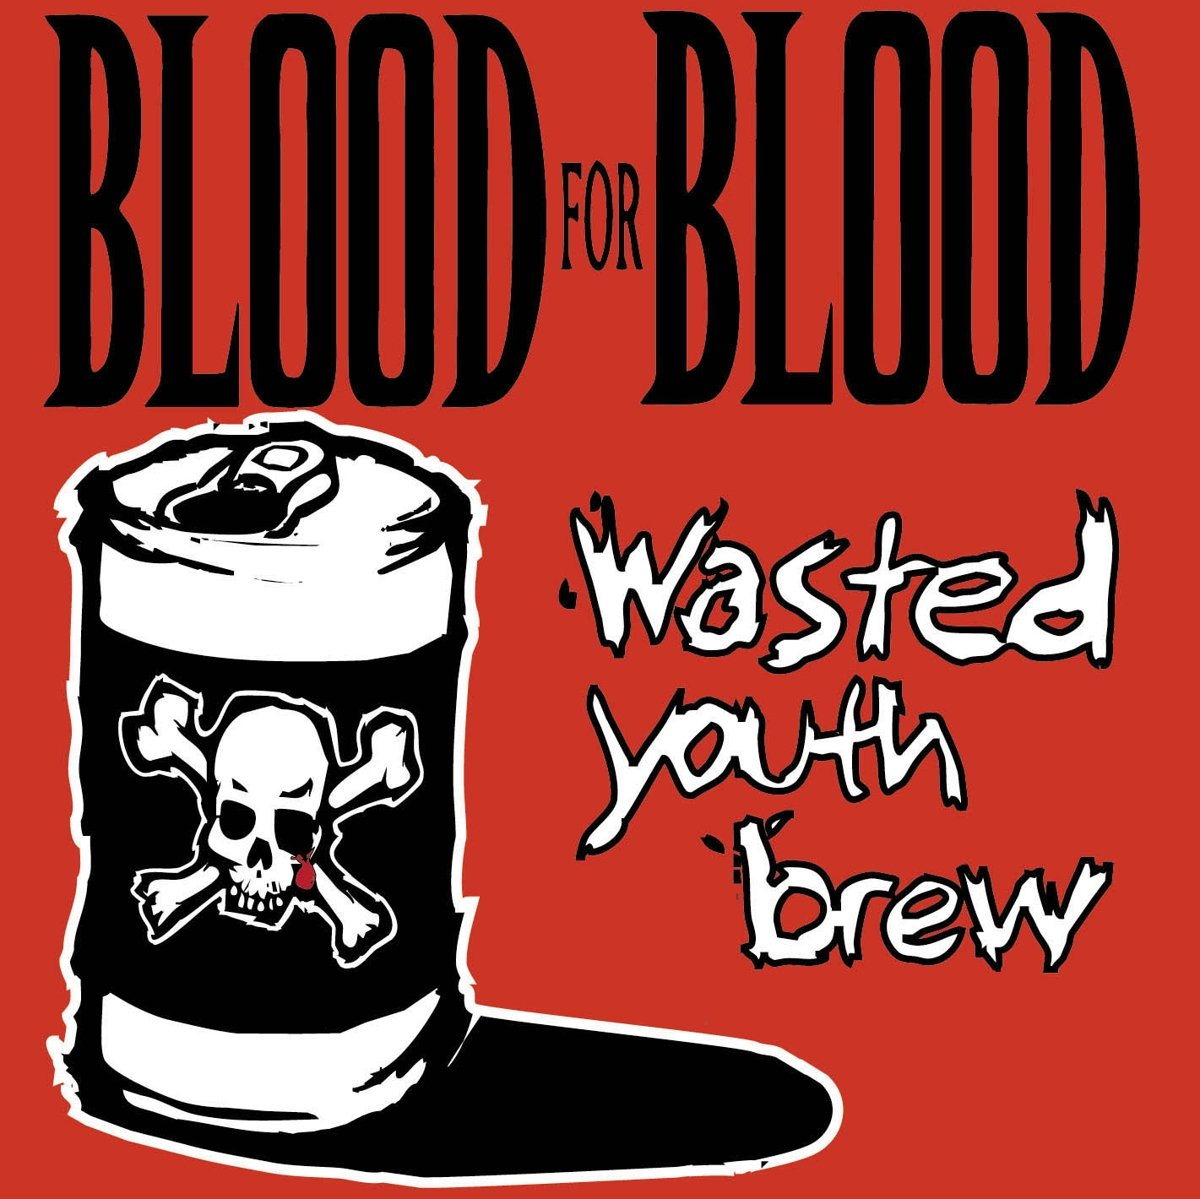 Blood For Blood/Wasted Youth Brew [LP]